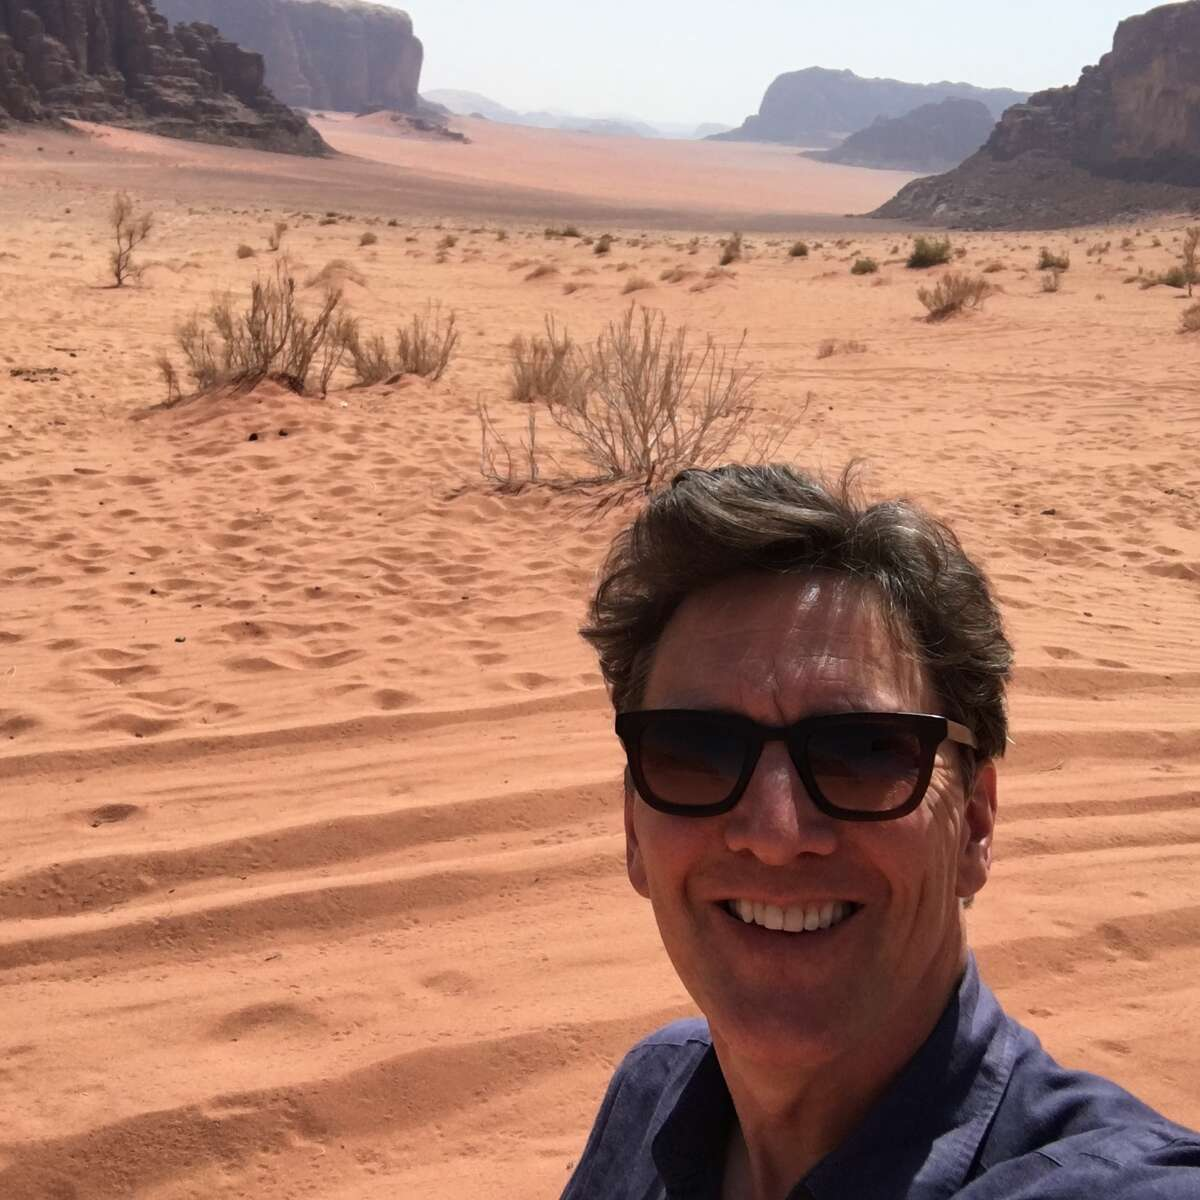 Actor-director-writer Andrew McCarthy stops for a selfie in Wadi Rum Protected Area, a desert wilderness in southern Jordan.